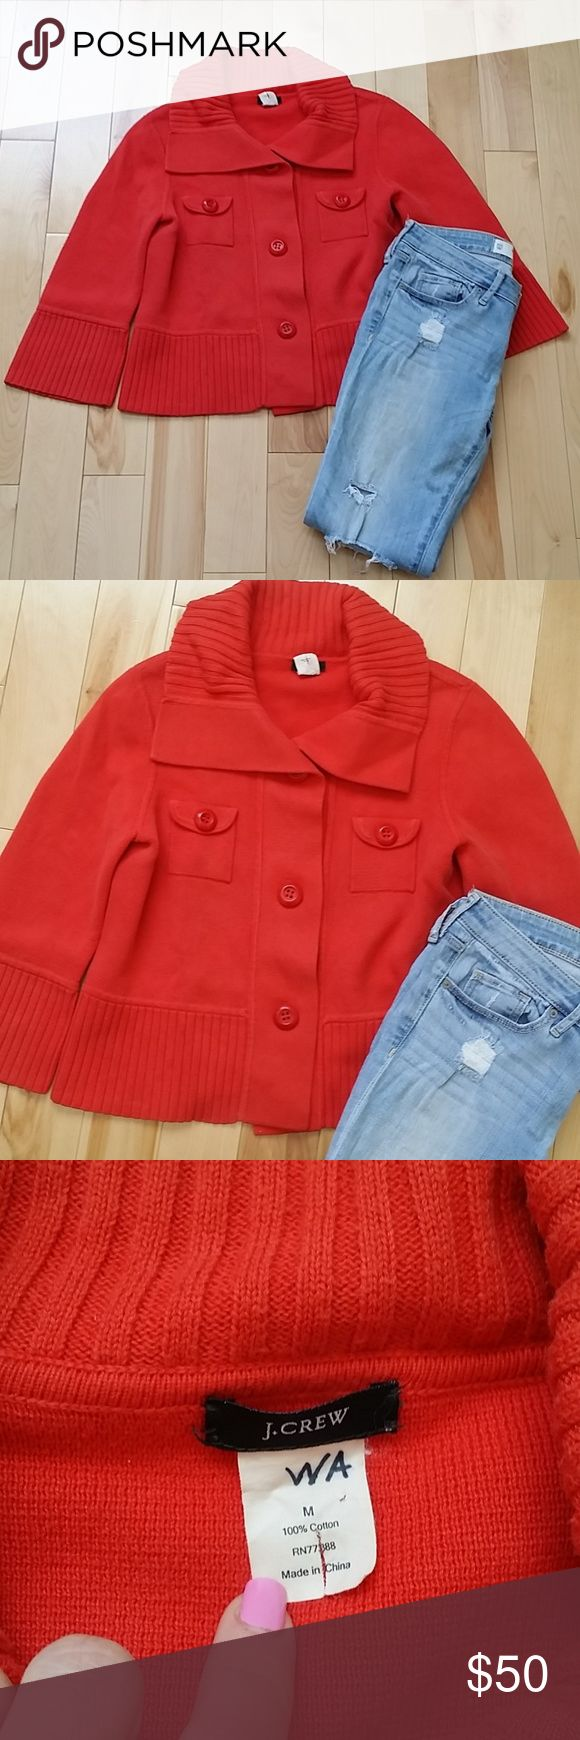 """J CREW ORANGE CARDIGAN WOMENS J Crew orange cardigan. Fits like a long crop top length. Jeans are Abercrombie & Fitch and can be included in your order.  Length 20"""" Material: 100% cotton. J. Crew Sweaters Cardigans"""